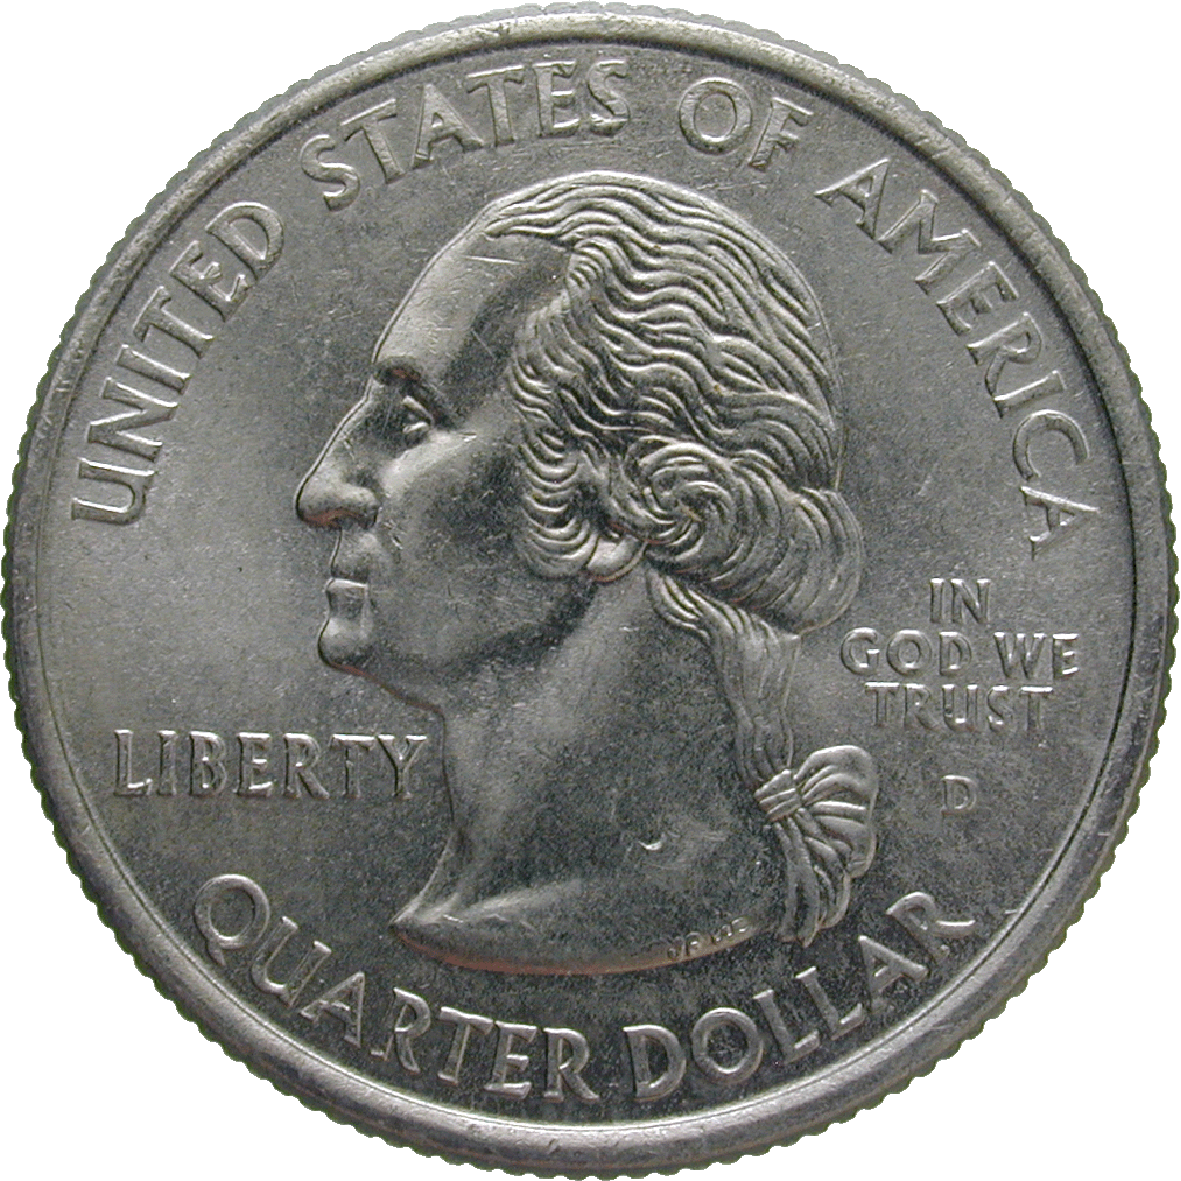 United States of America, Quarter Dollar 2000 (obverse)